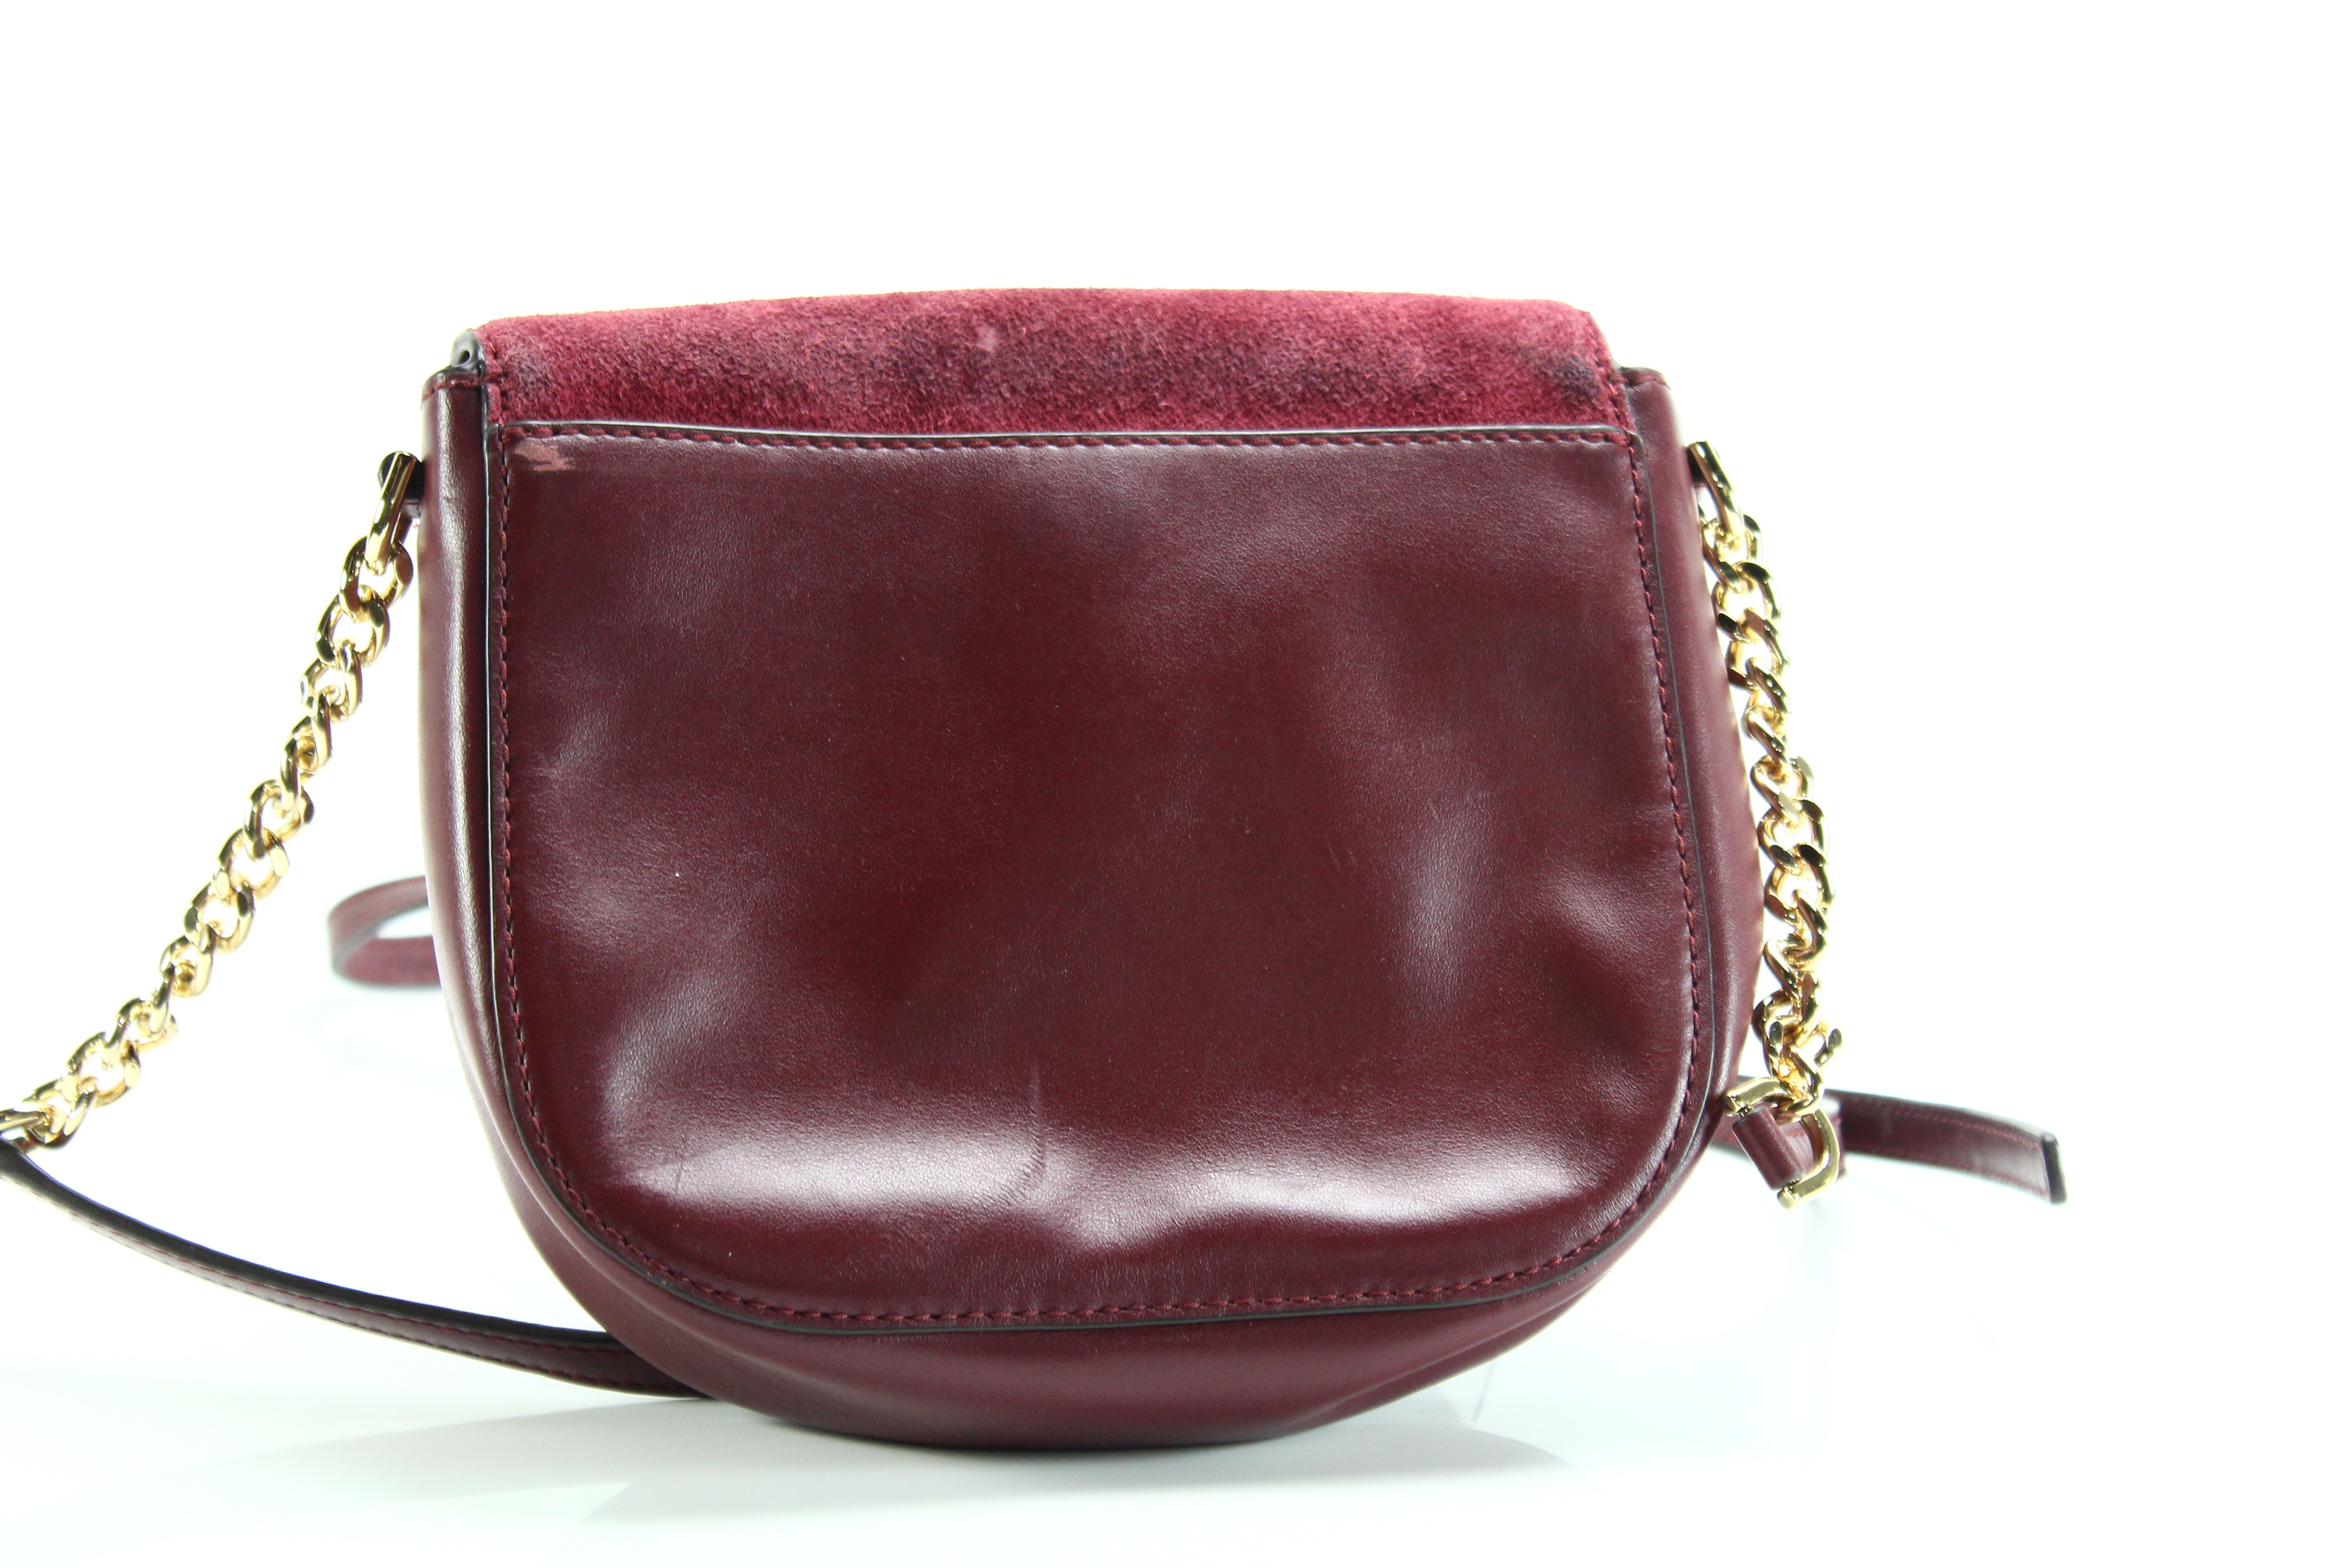 3f6e1a49f59b67 Michael Kors NEW Red Maroon Gold Half Dome Crossbody Leather Handbag ...